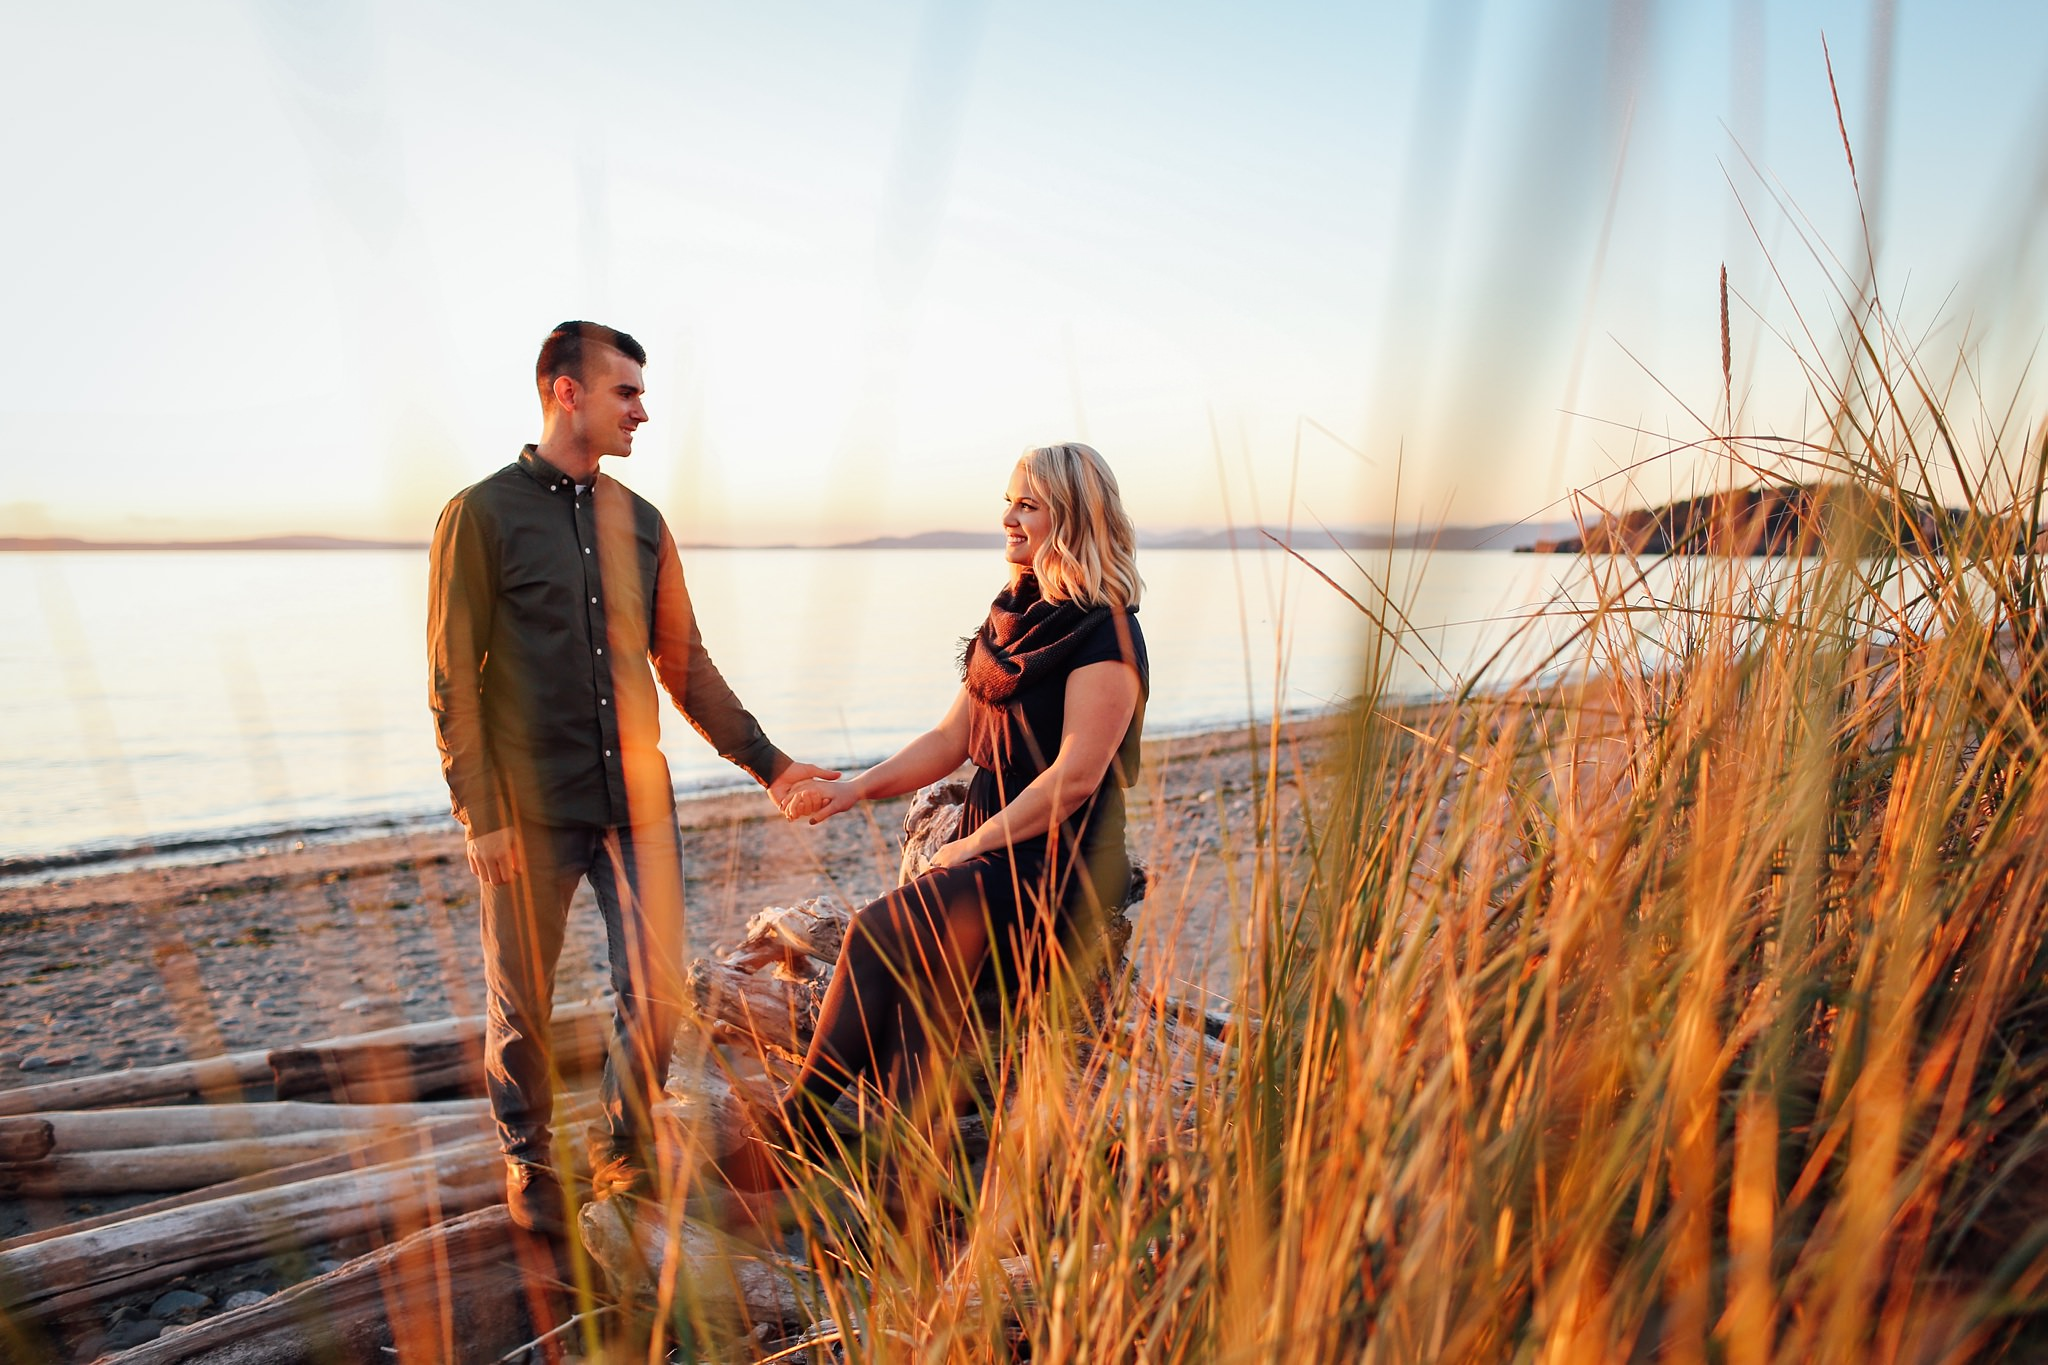 Whidbey-Island-Family-Photographer-Kara-Chappell-Photography_1390.jpg